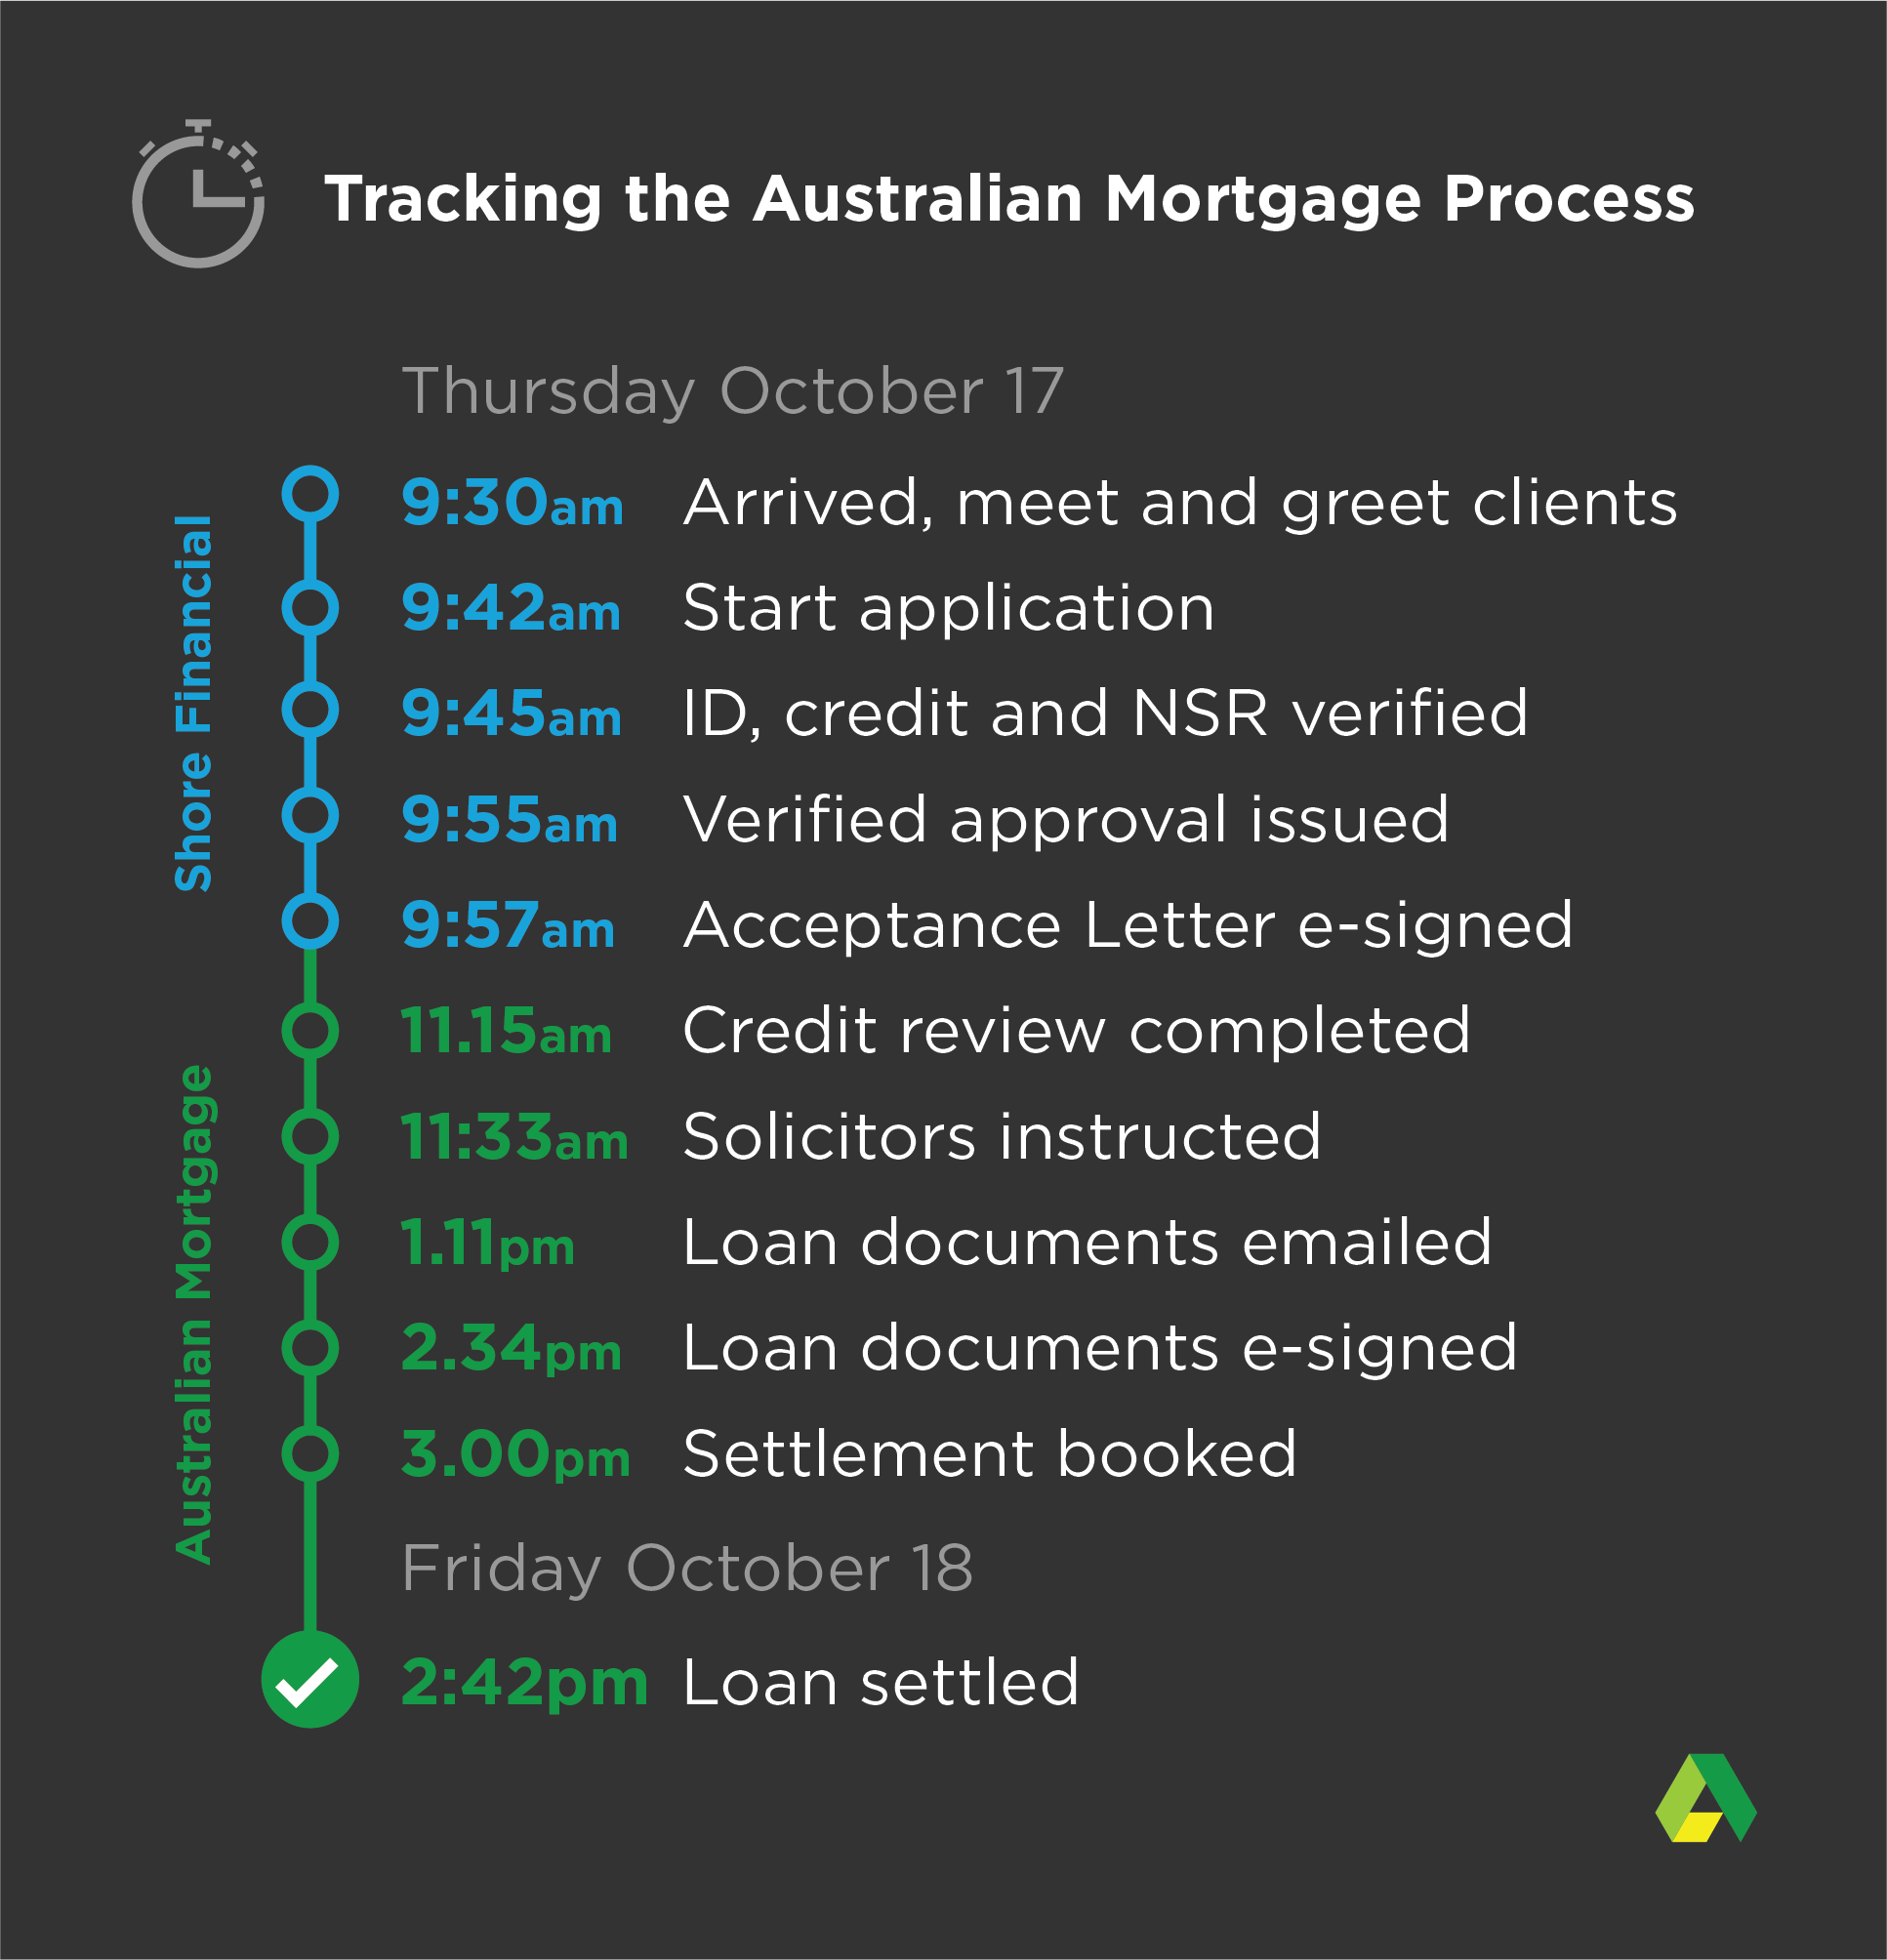 https://australianmortgage.com/wp-content/uploads/2019/10/Australian-Mortgage-Tracking-first-loan-process.png